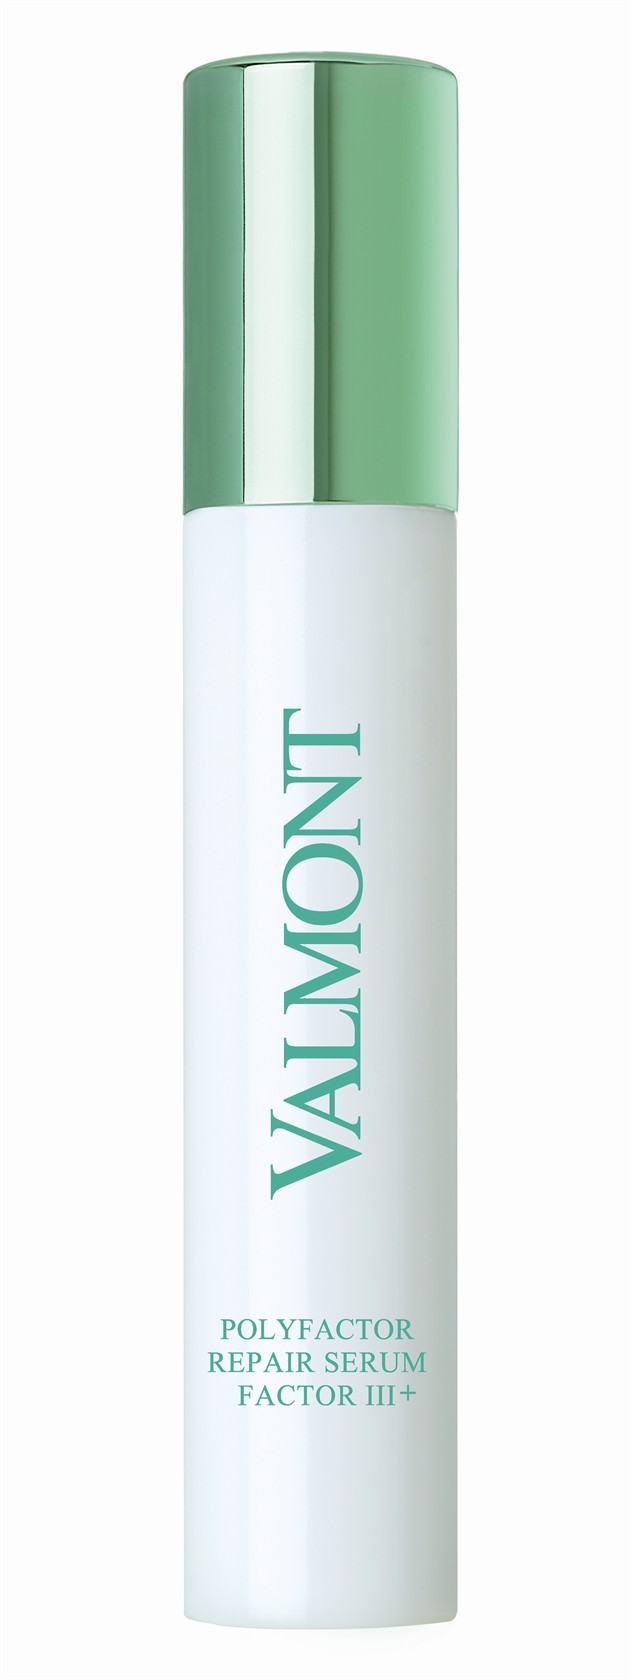 WTFSG_valmont-prime-awf-anti-wrinkle-care-line_2